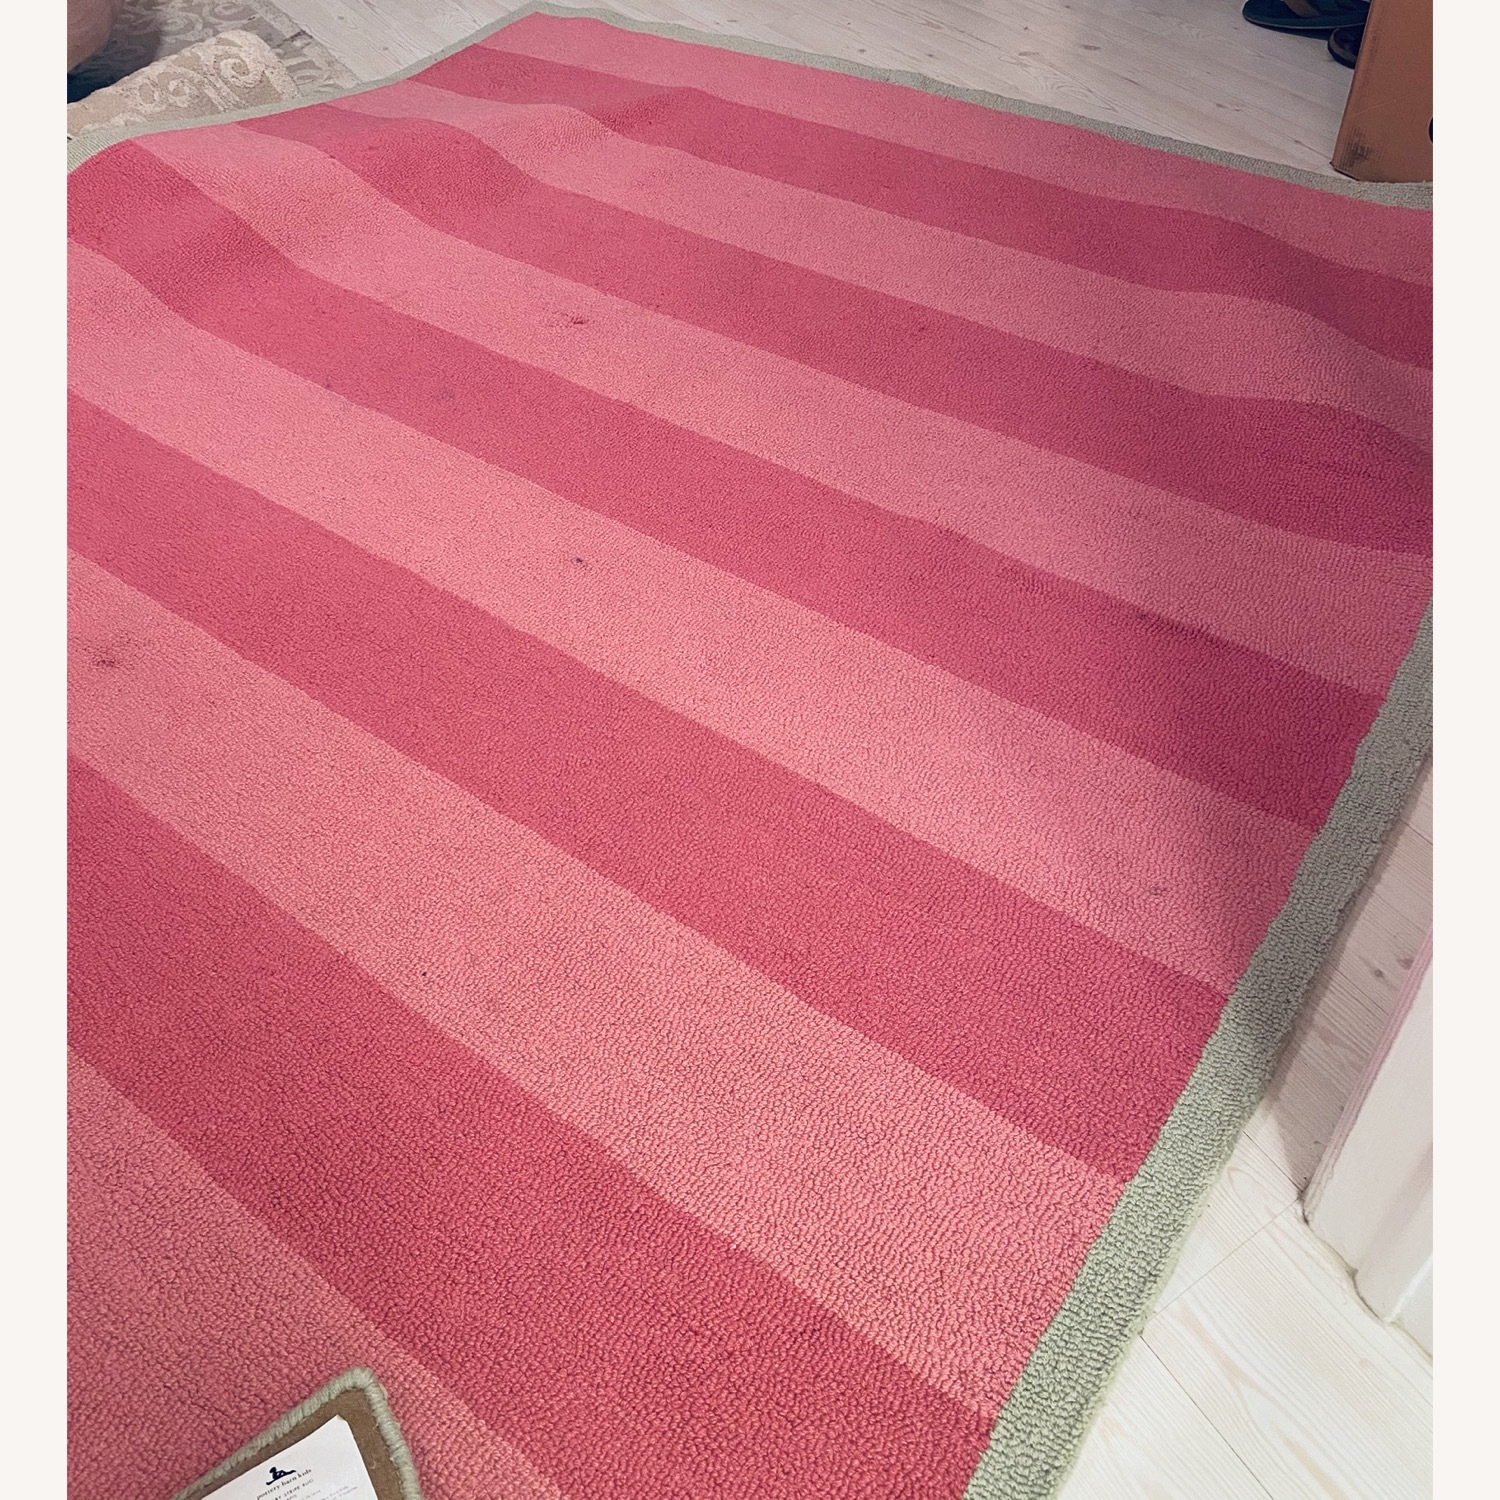 Pottery Barn Kids Pink and Green Striped Rug - image-2